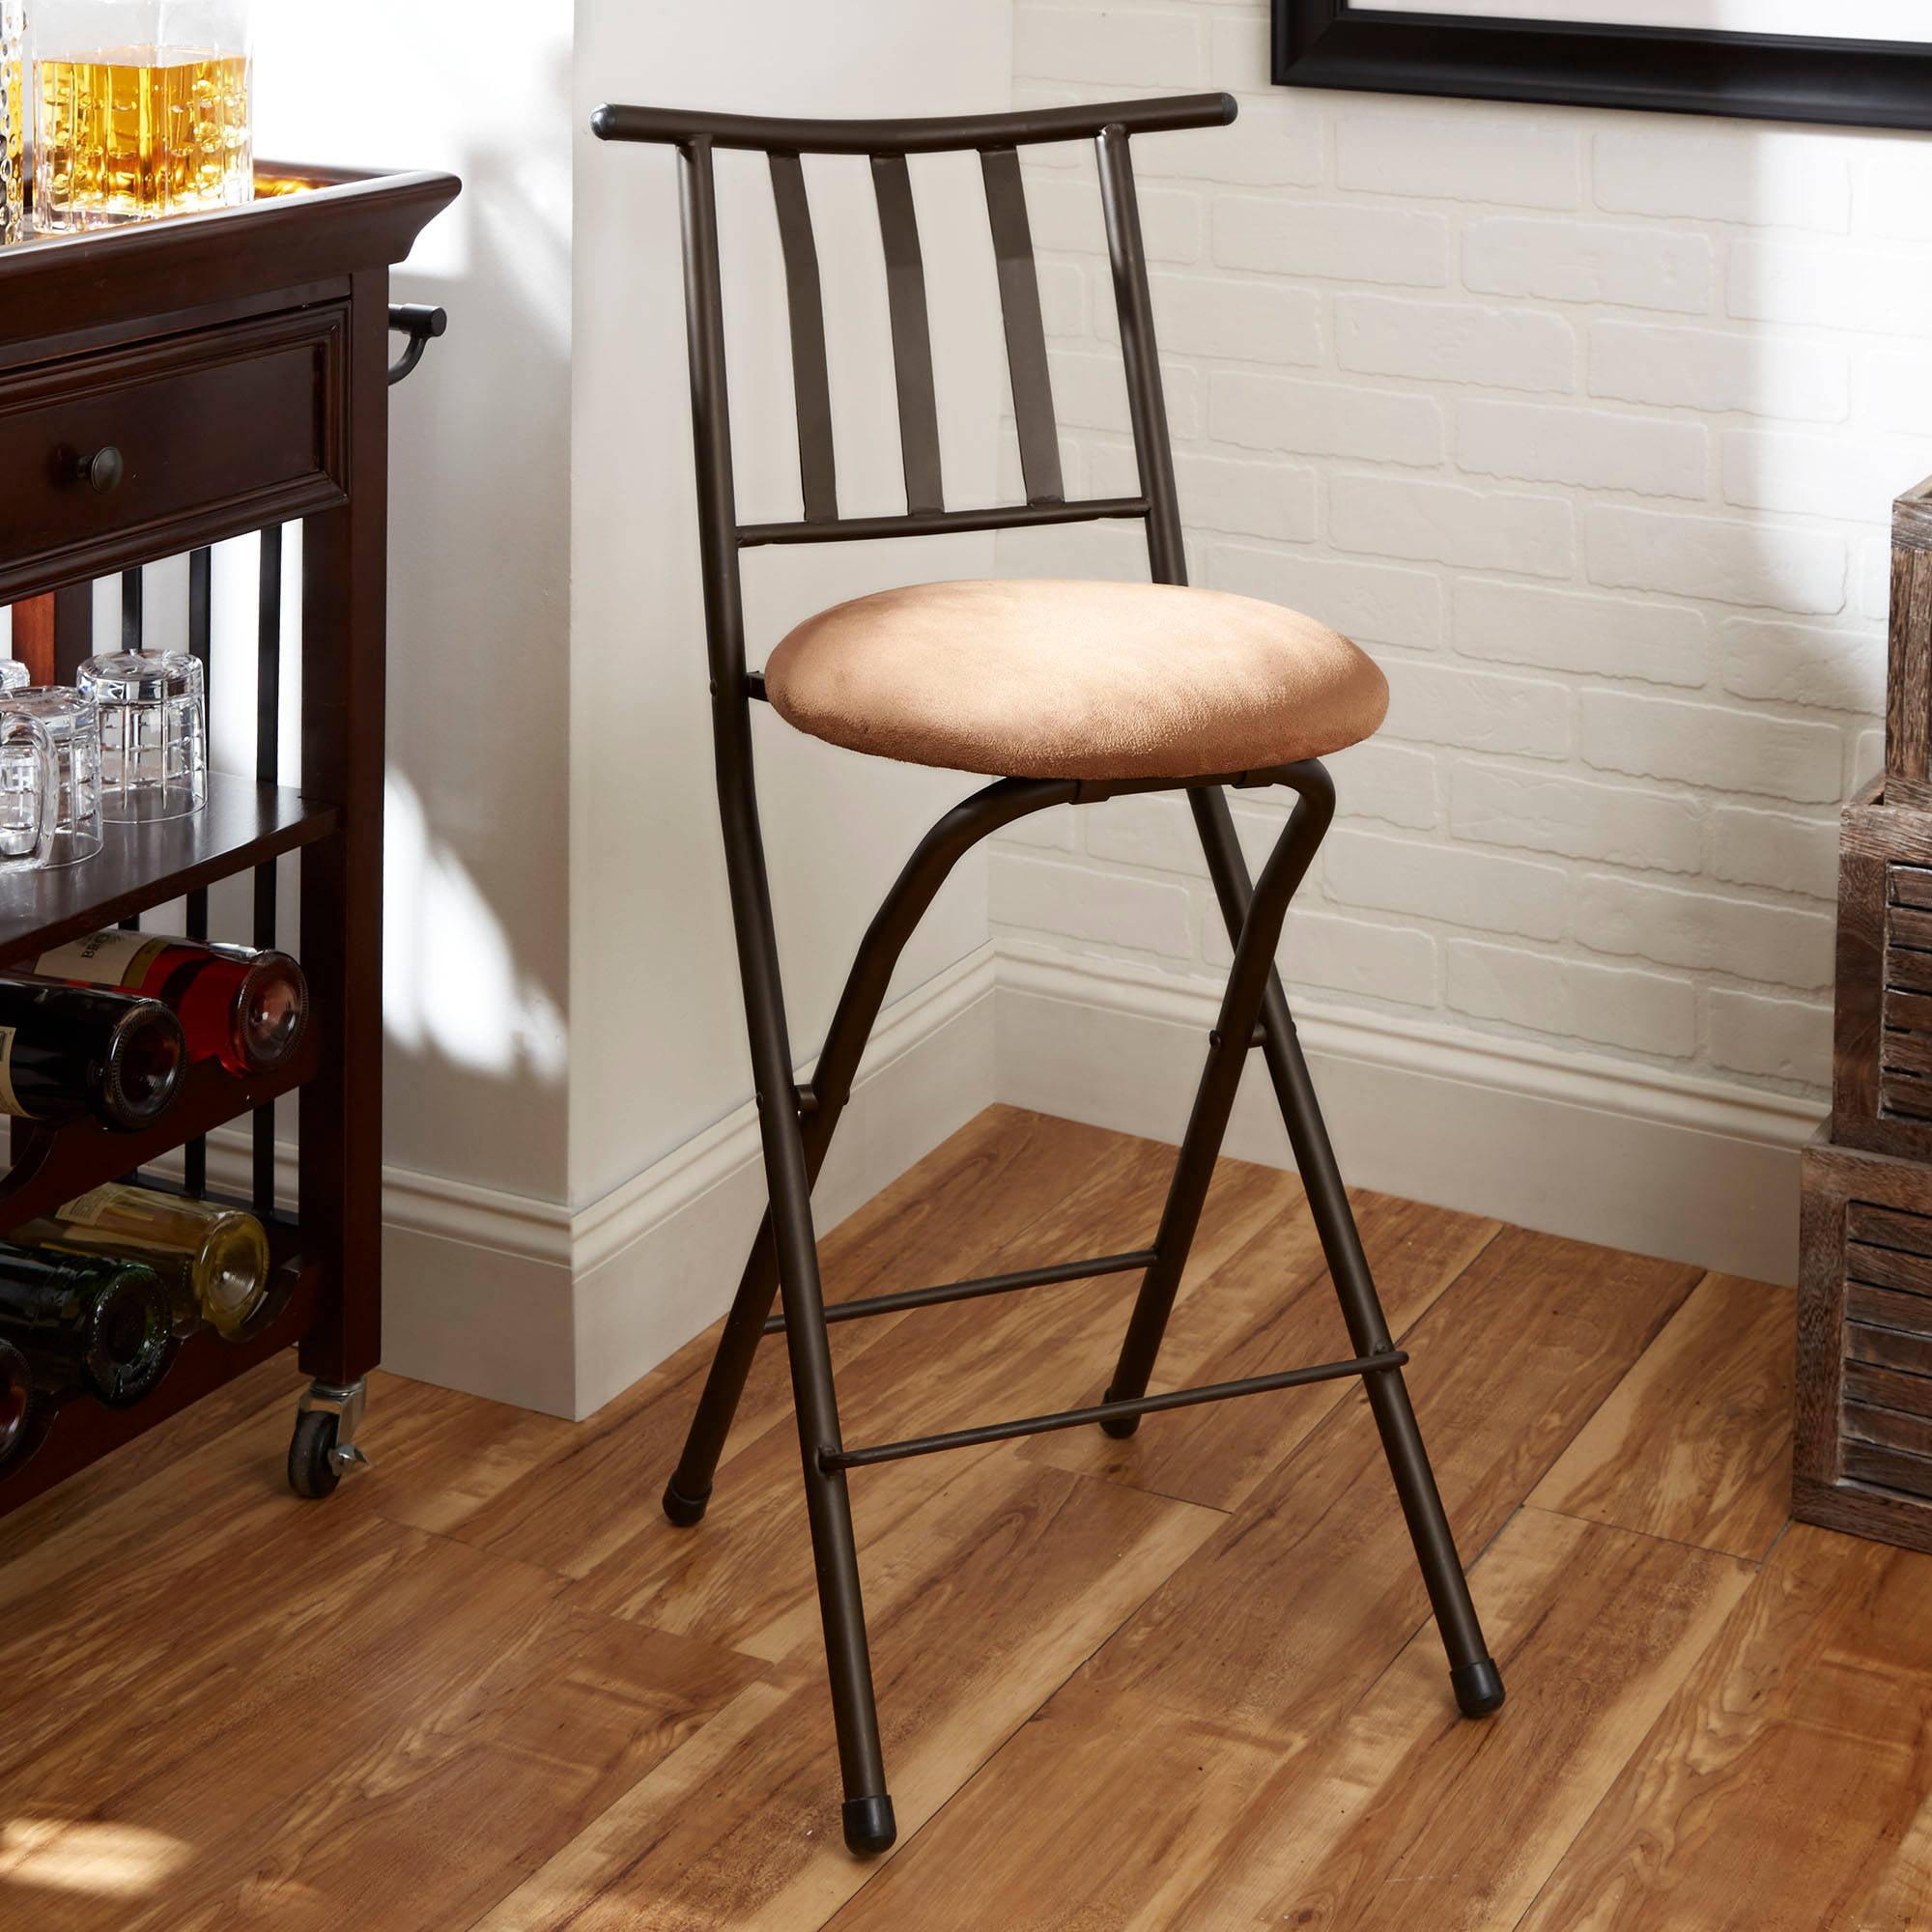 counter cheyenne company furniture rustic p bar abode w industrial stool back height lancaster stools